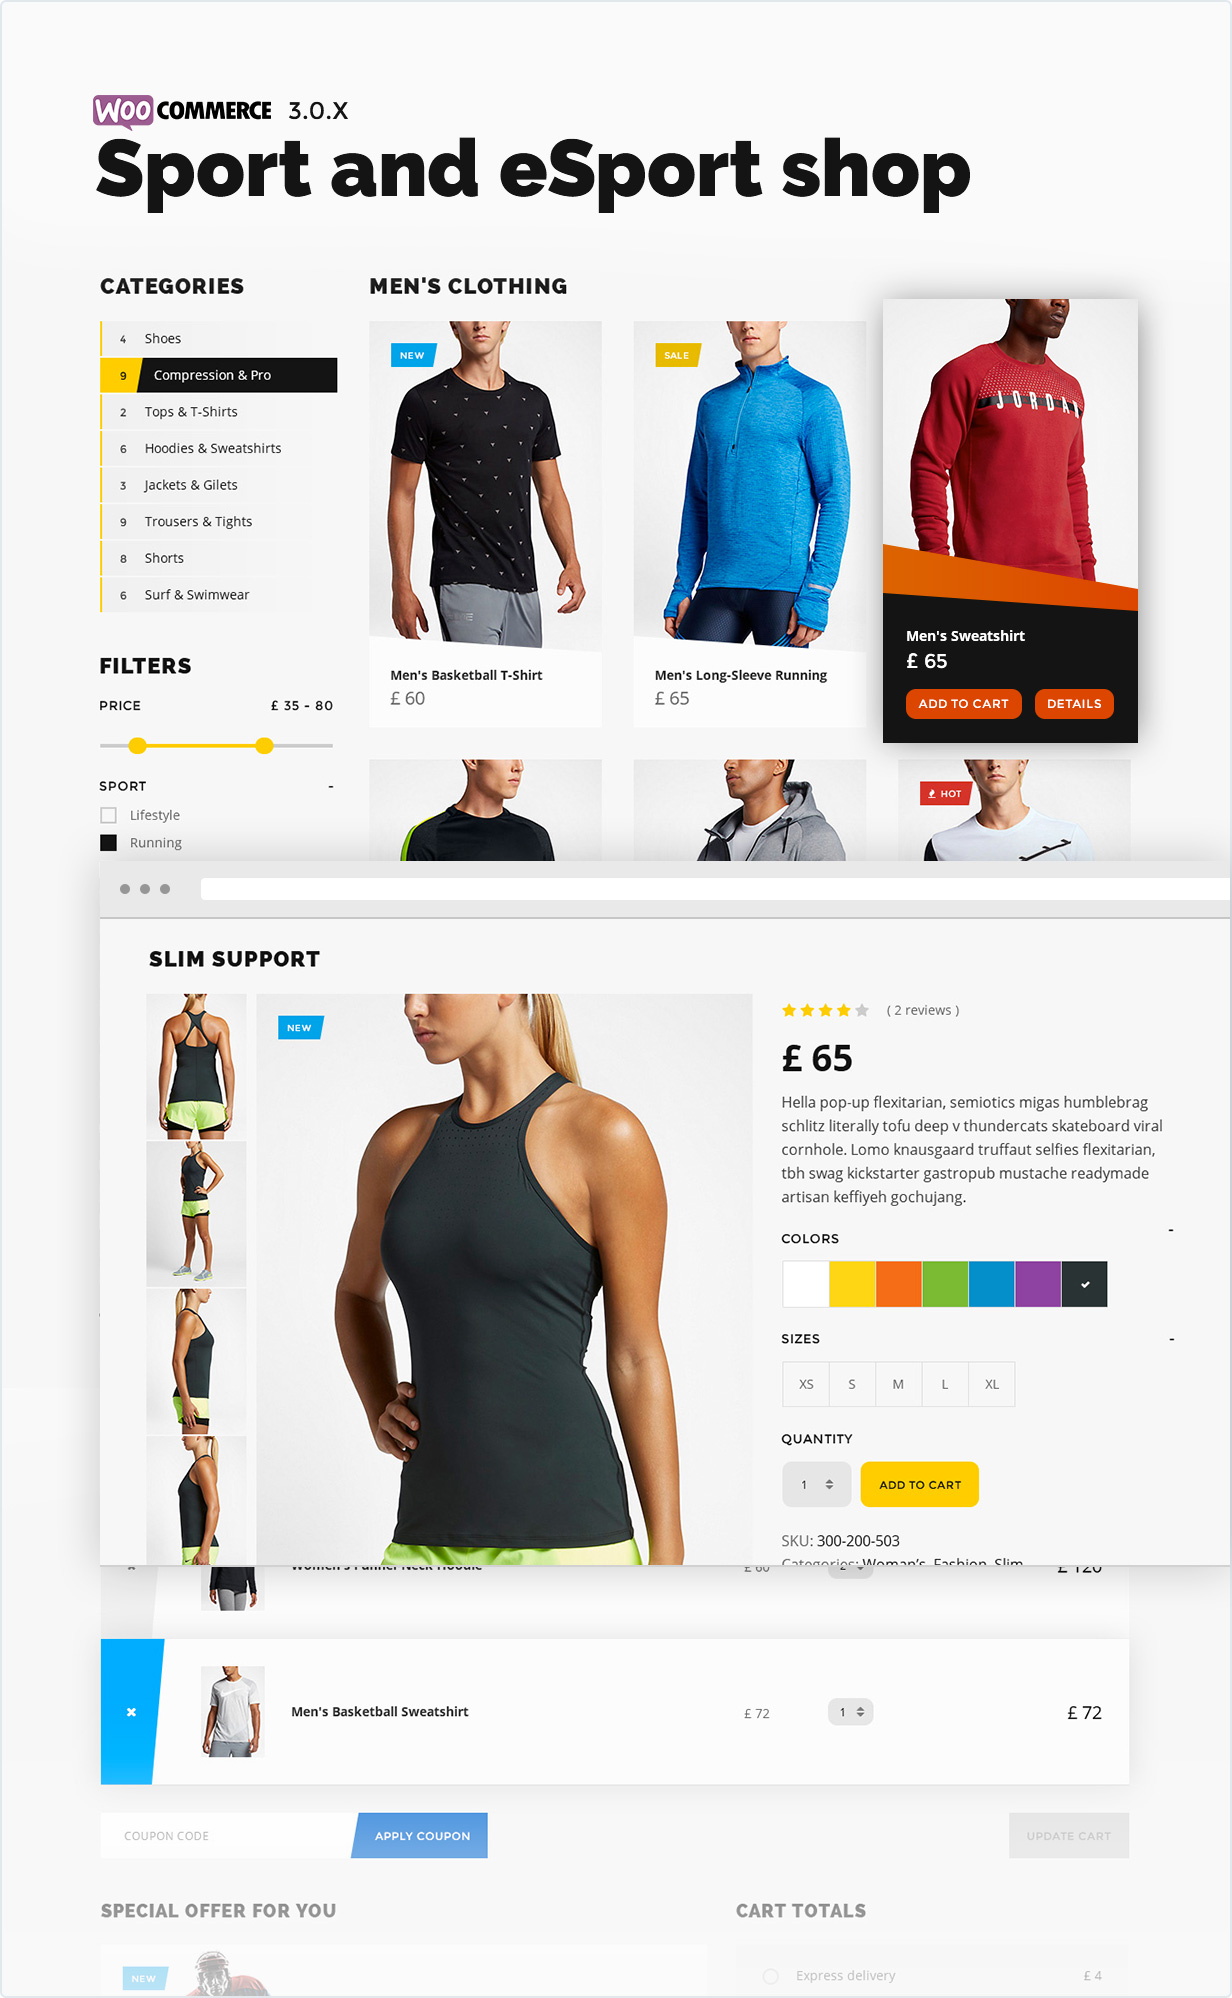 Sport and eSport shop on woocommerce 3.0.X